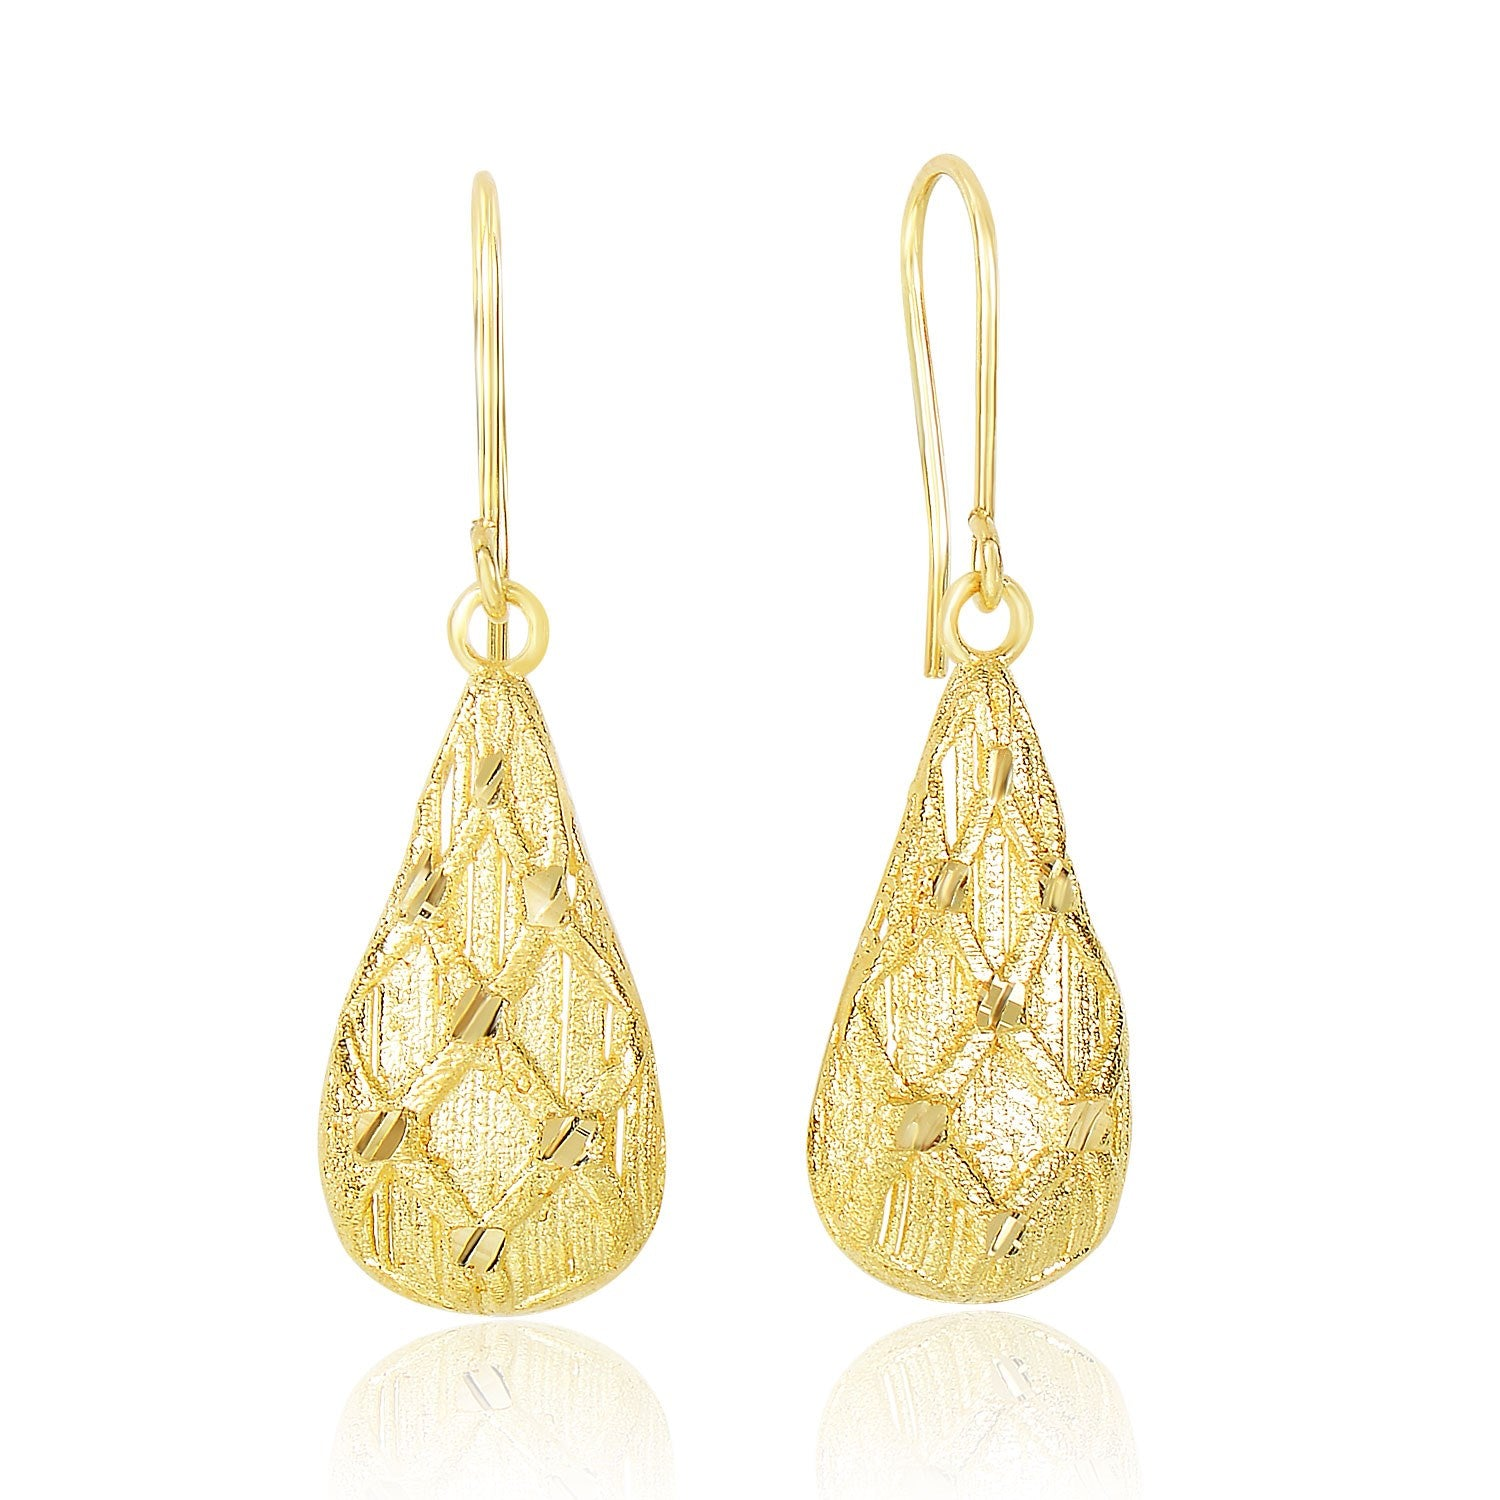 14K Yellow Gold Diamond Sanded Textured Design Teardrop Earrings